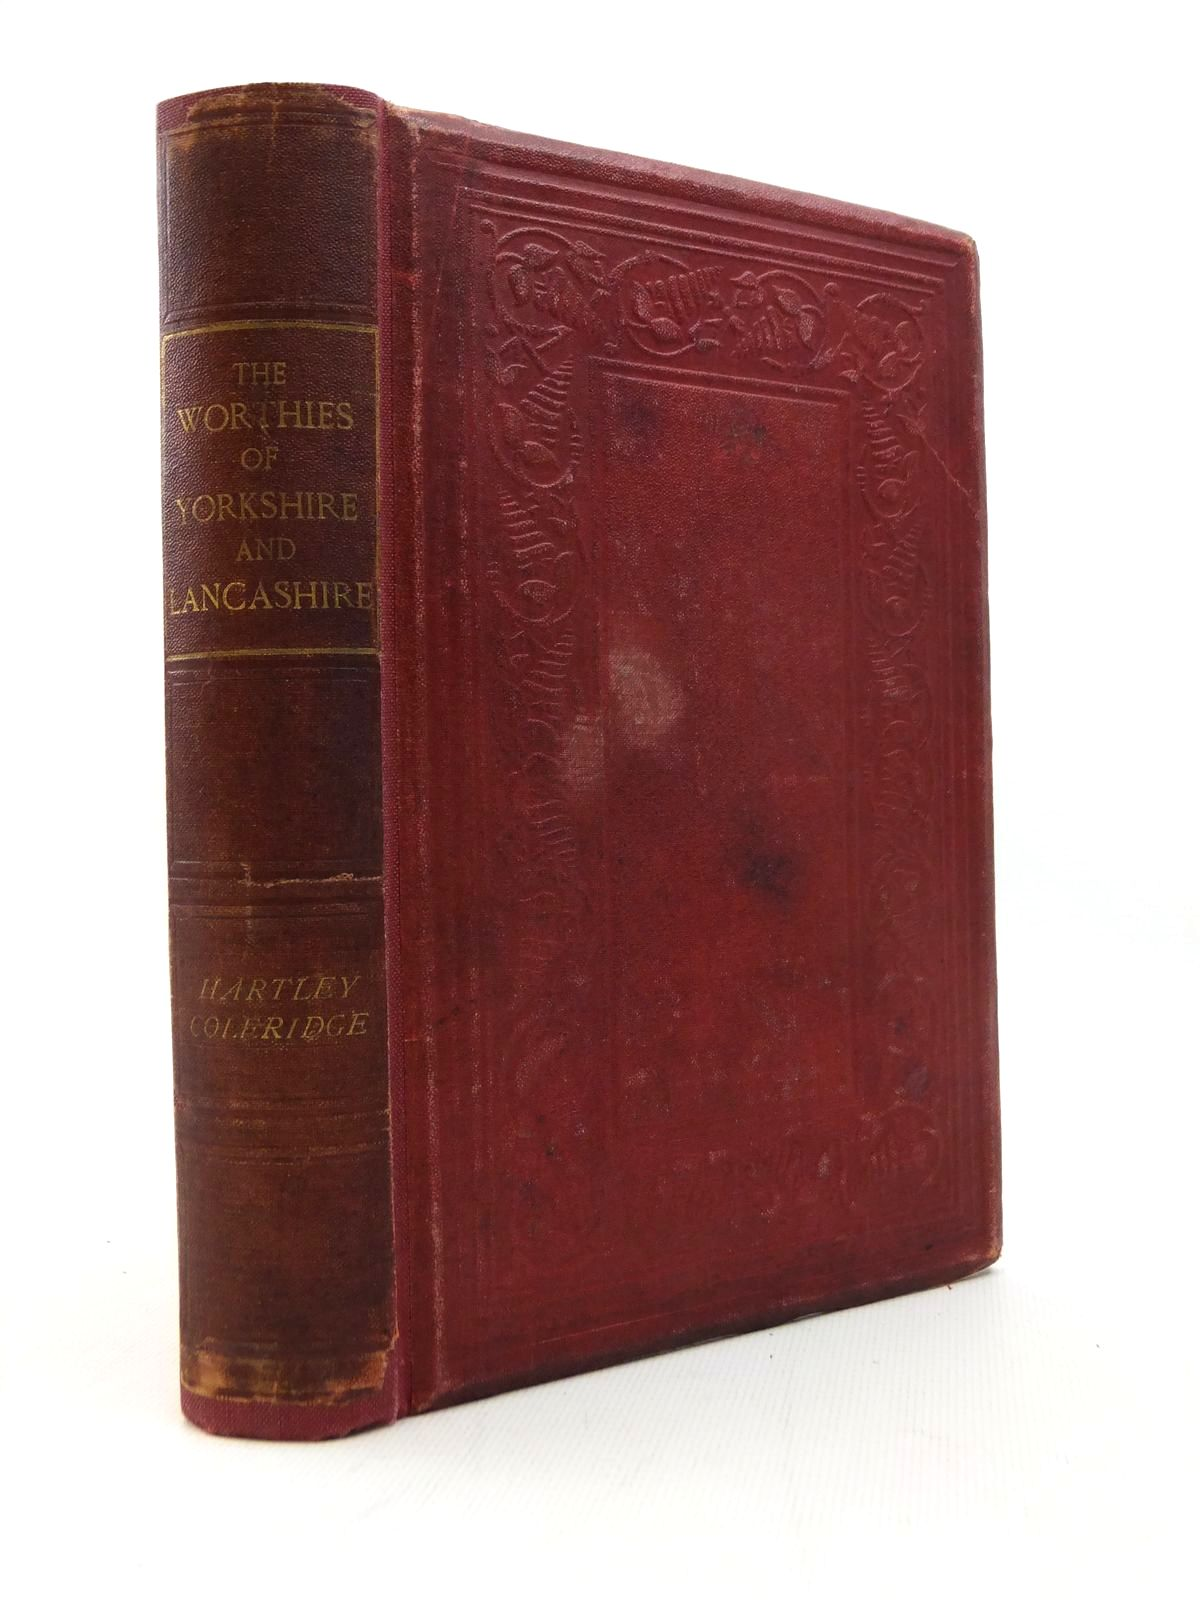 Photo of THE WORTHIES OF YORKSHIRE AND LANCASHIRE written by Coleridge, Hartley published by Frederick Warne & Co. (STOCK CODE: 1208783)  for sale by Stella & Rose's Books